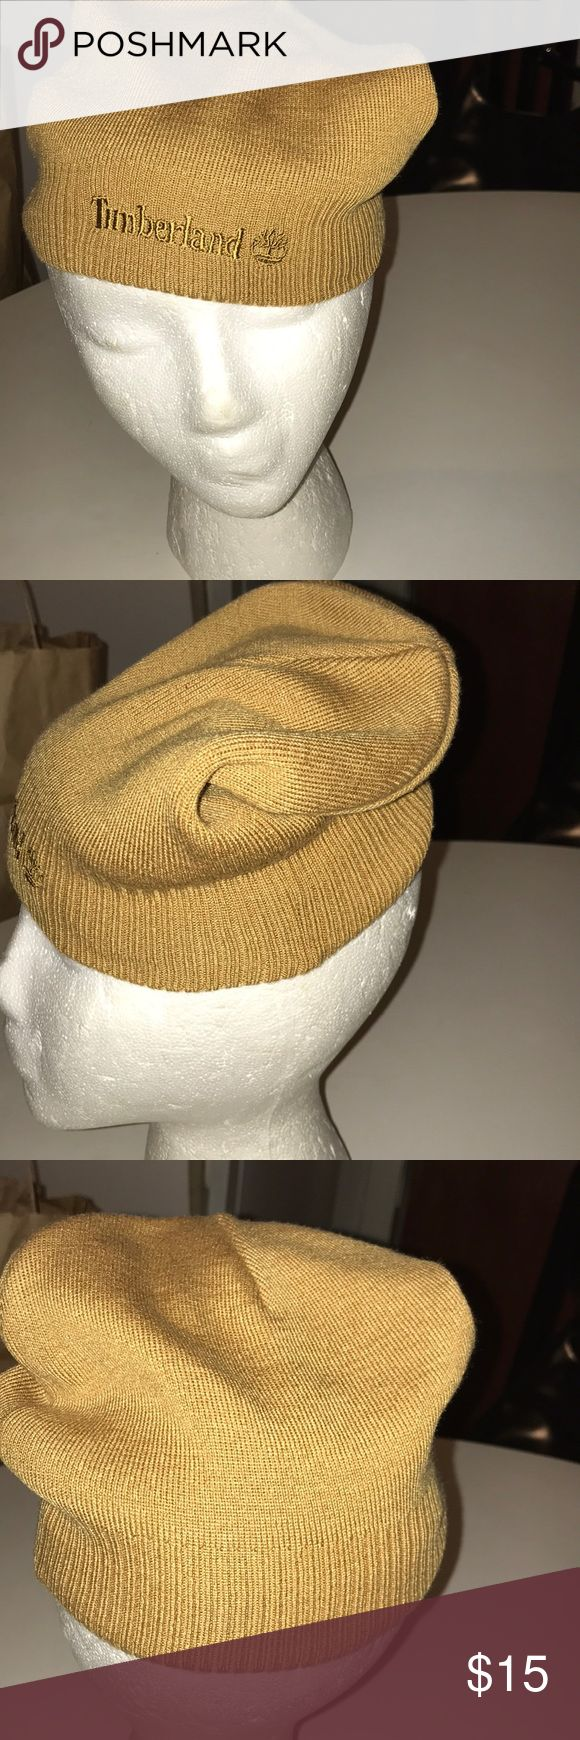 Timberland hat Mustard color knit hat. Signature name on front. Ribbed trim. Good condition & warm. Goes great with timberland gear Timberland Accessories Hats